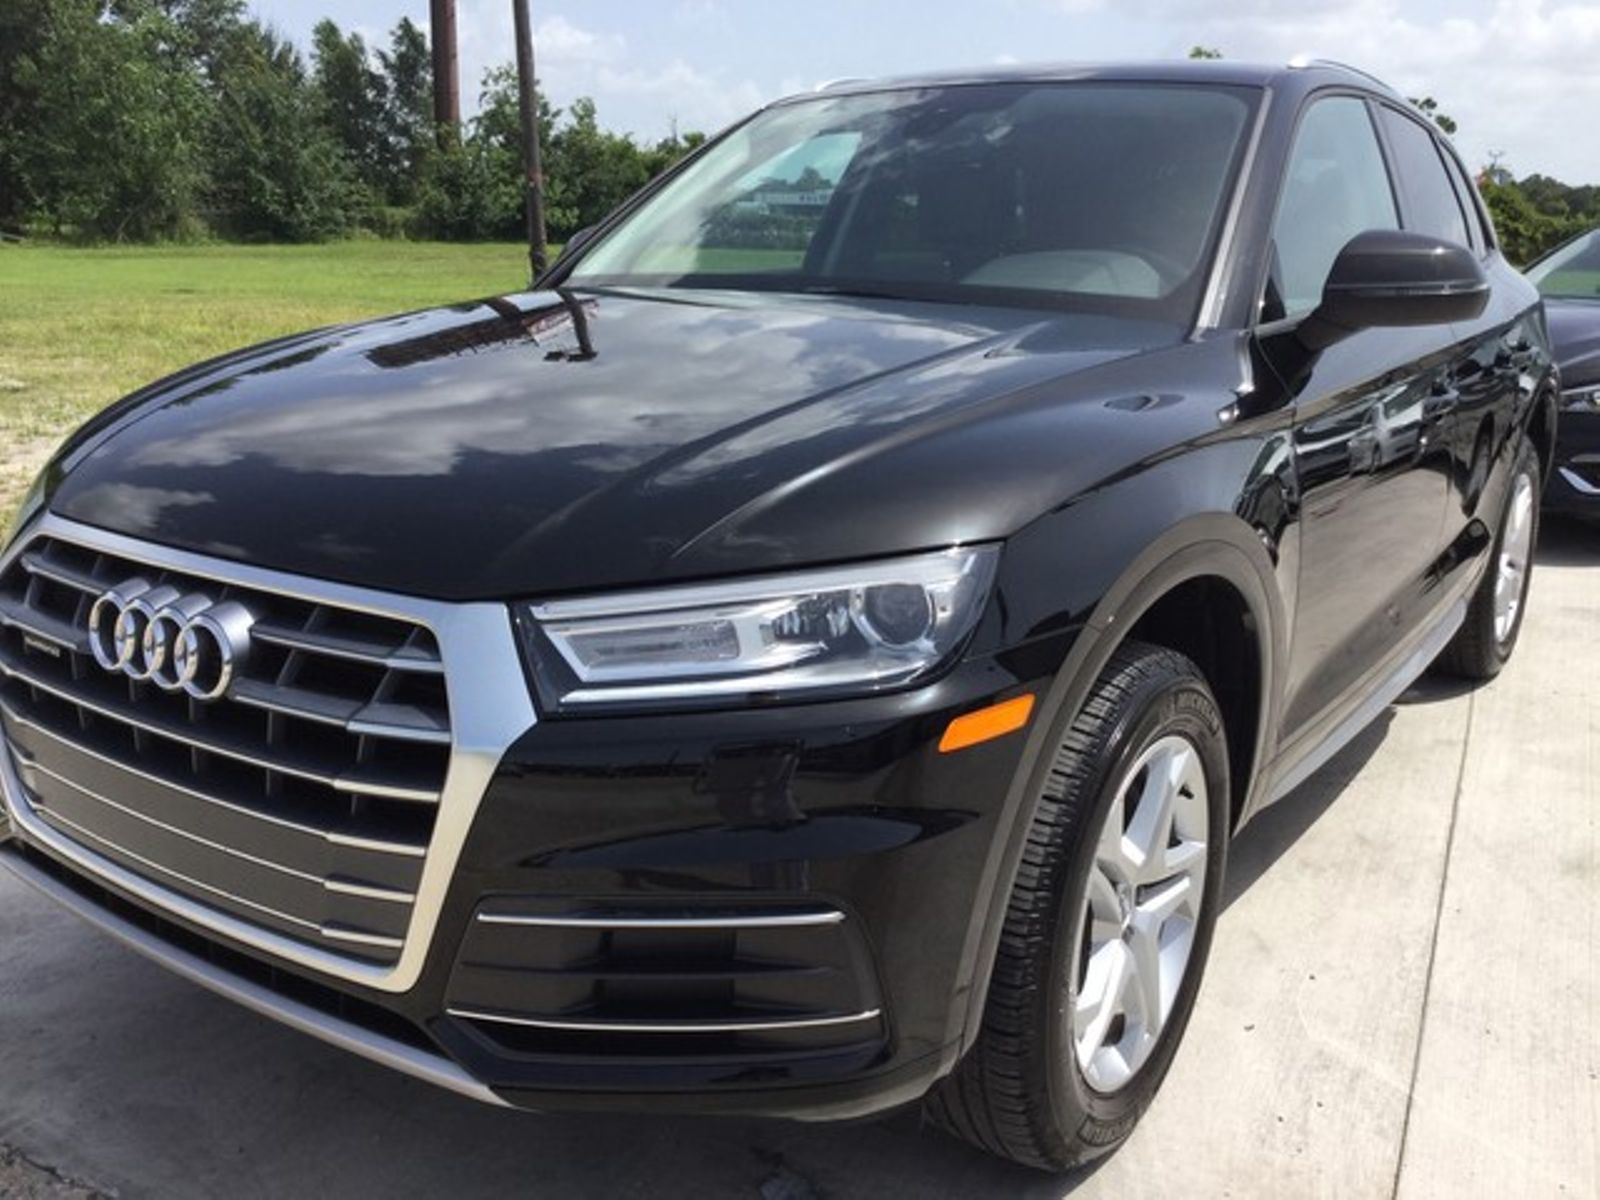 2018 audi q5 premium city louisiana billy navarre certified. Black Bedroom Furniture Sets. Home Design Ideas